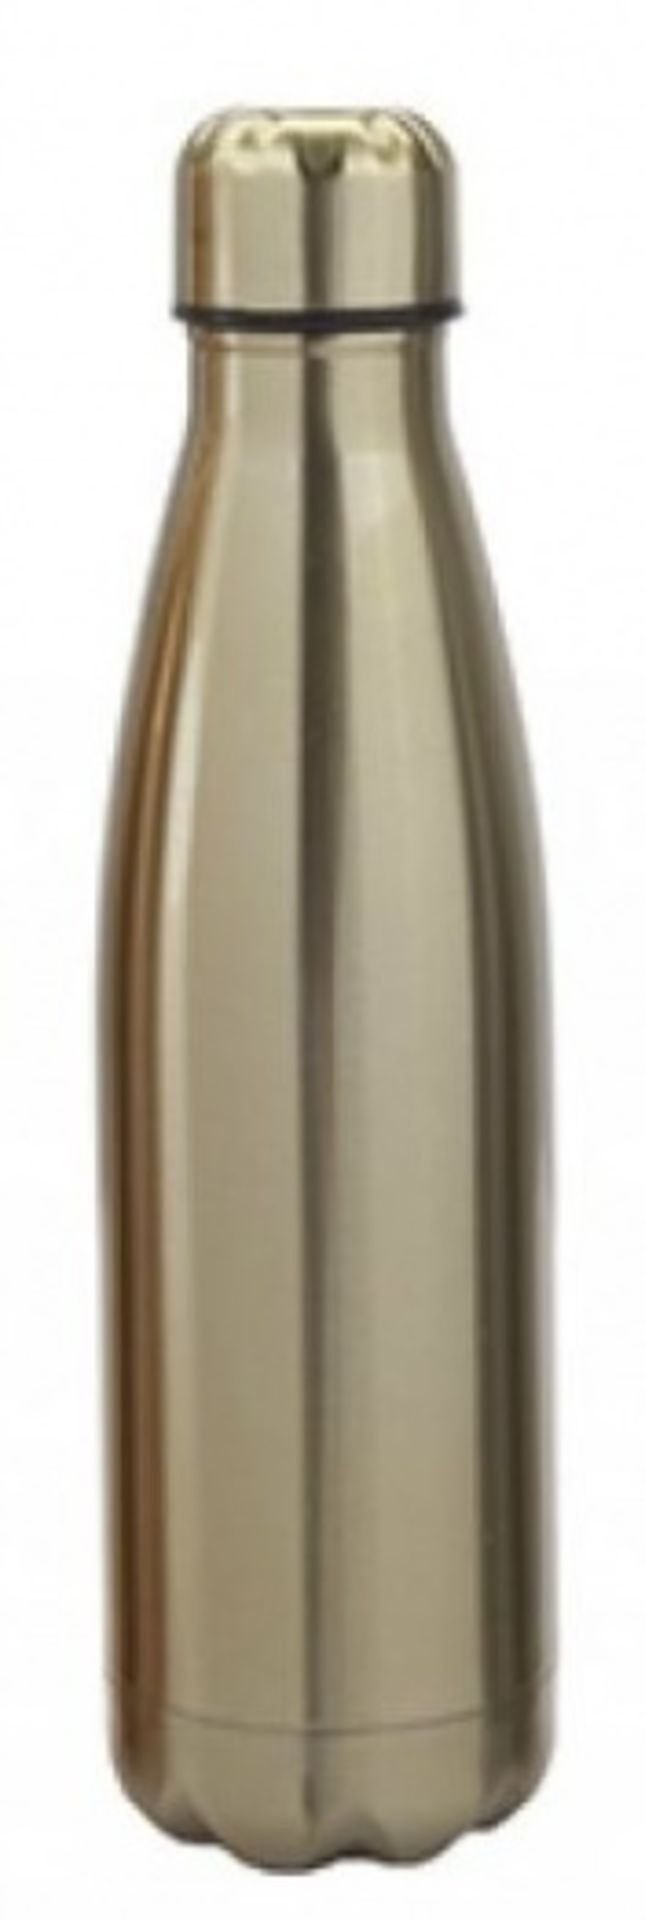 Lot 10285 - V Brand New Vacuum Insulated Steel Double Wall Vacuum Drinking Bottle (Colours May Vary)